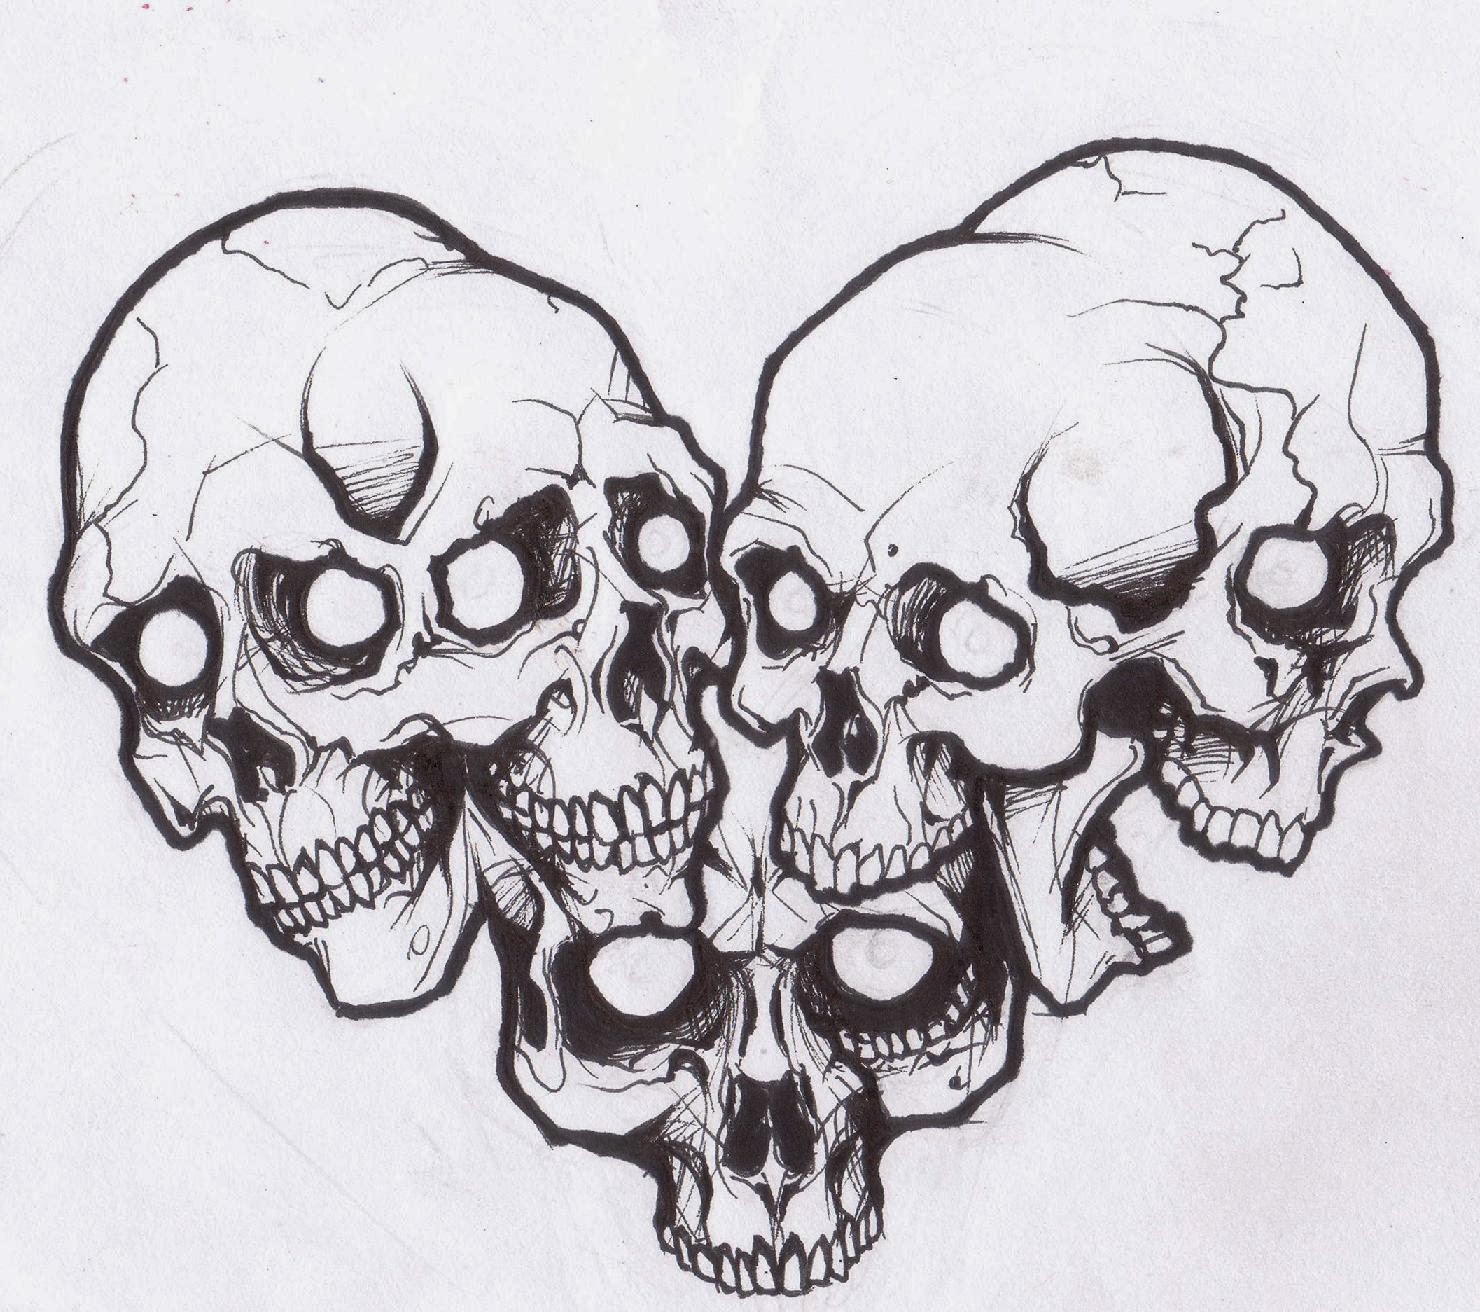 Skulls compilation tattoo stencil